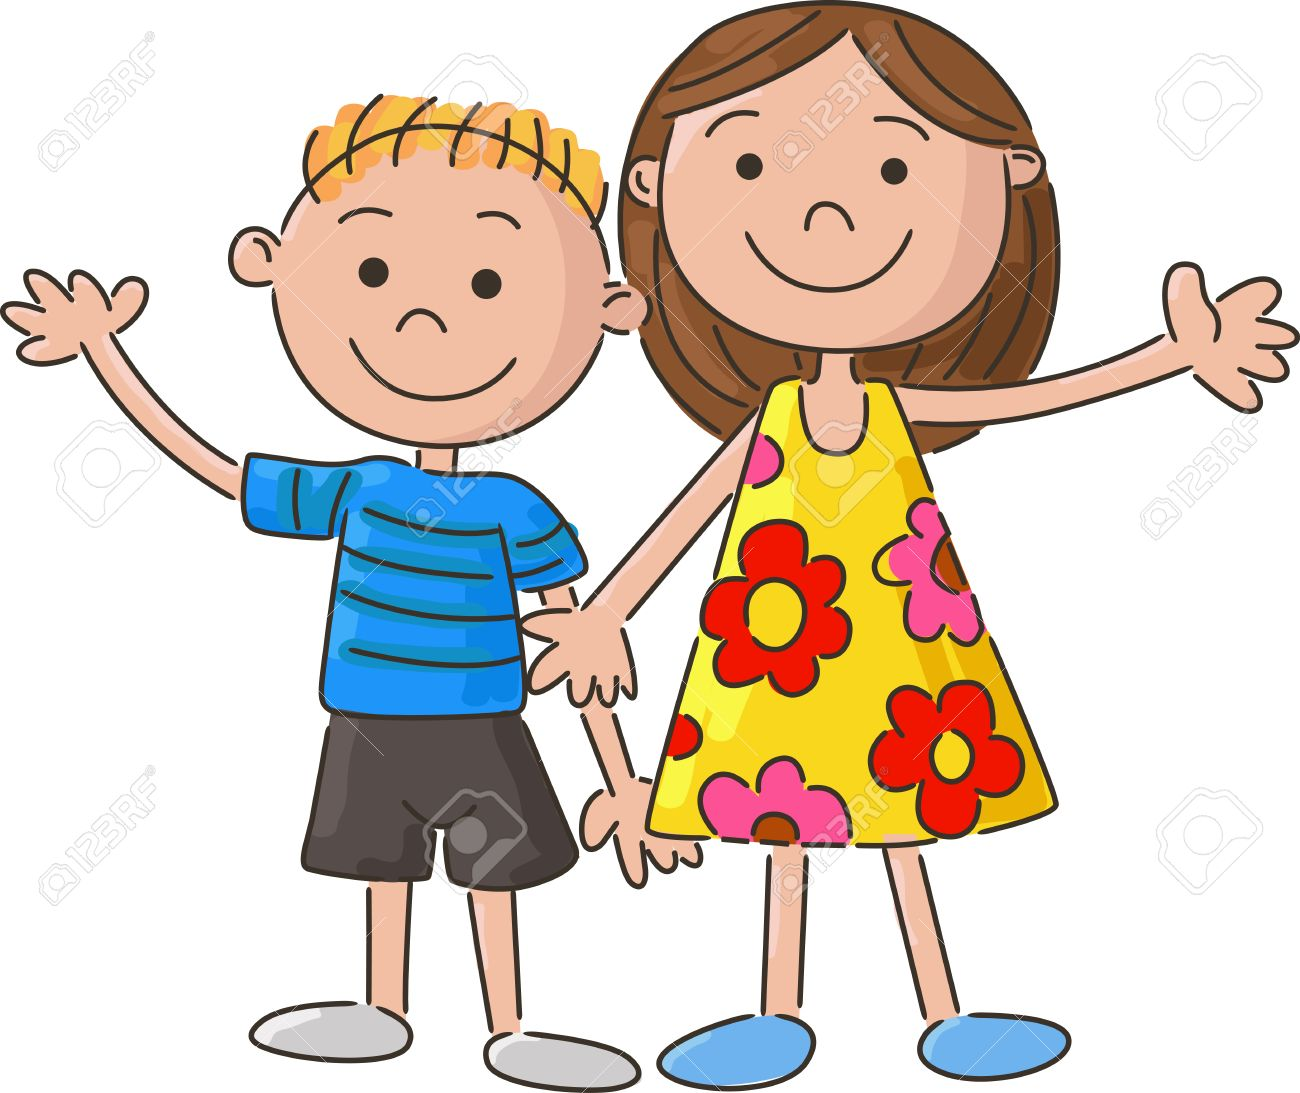 cartoon little kids holding hand royalty free cliparts vectors and rh 123rf com Best Friends Holding Hands Cartoon Best Friends Holding Hands Cartoon